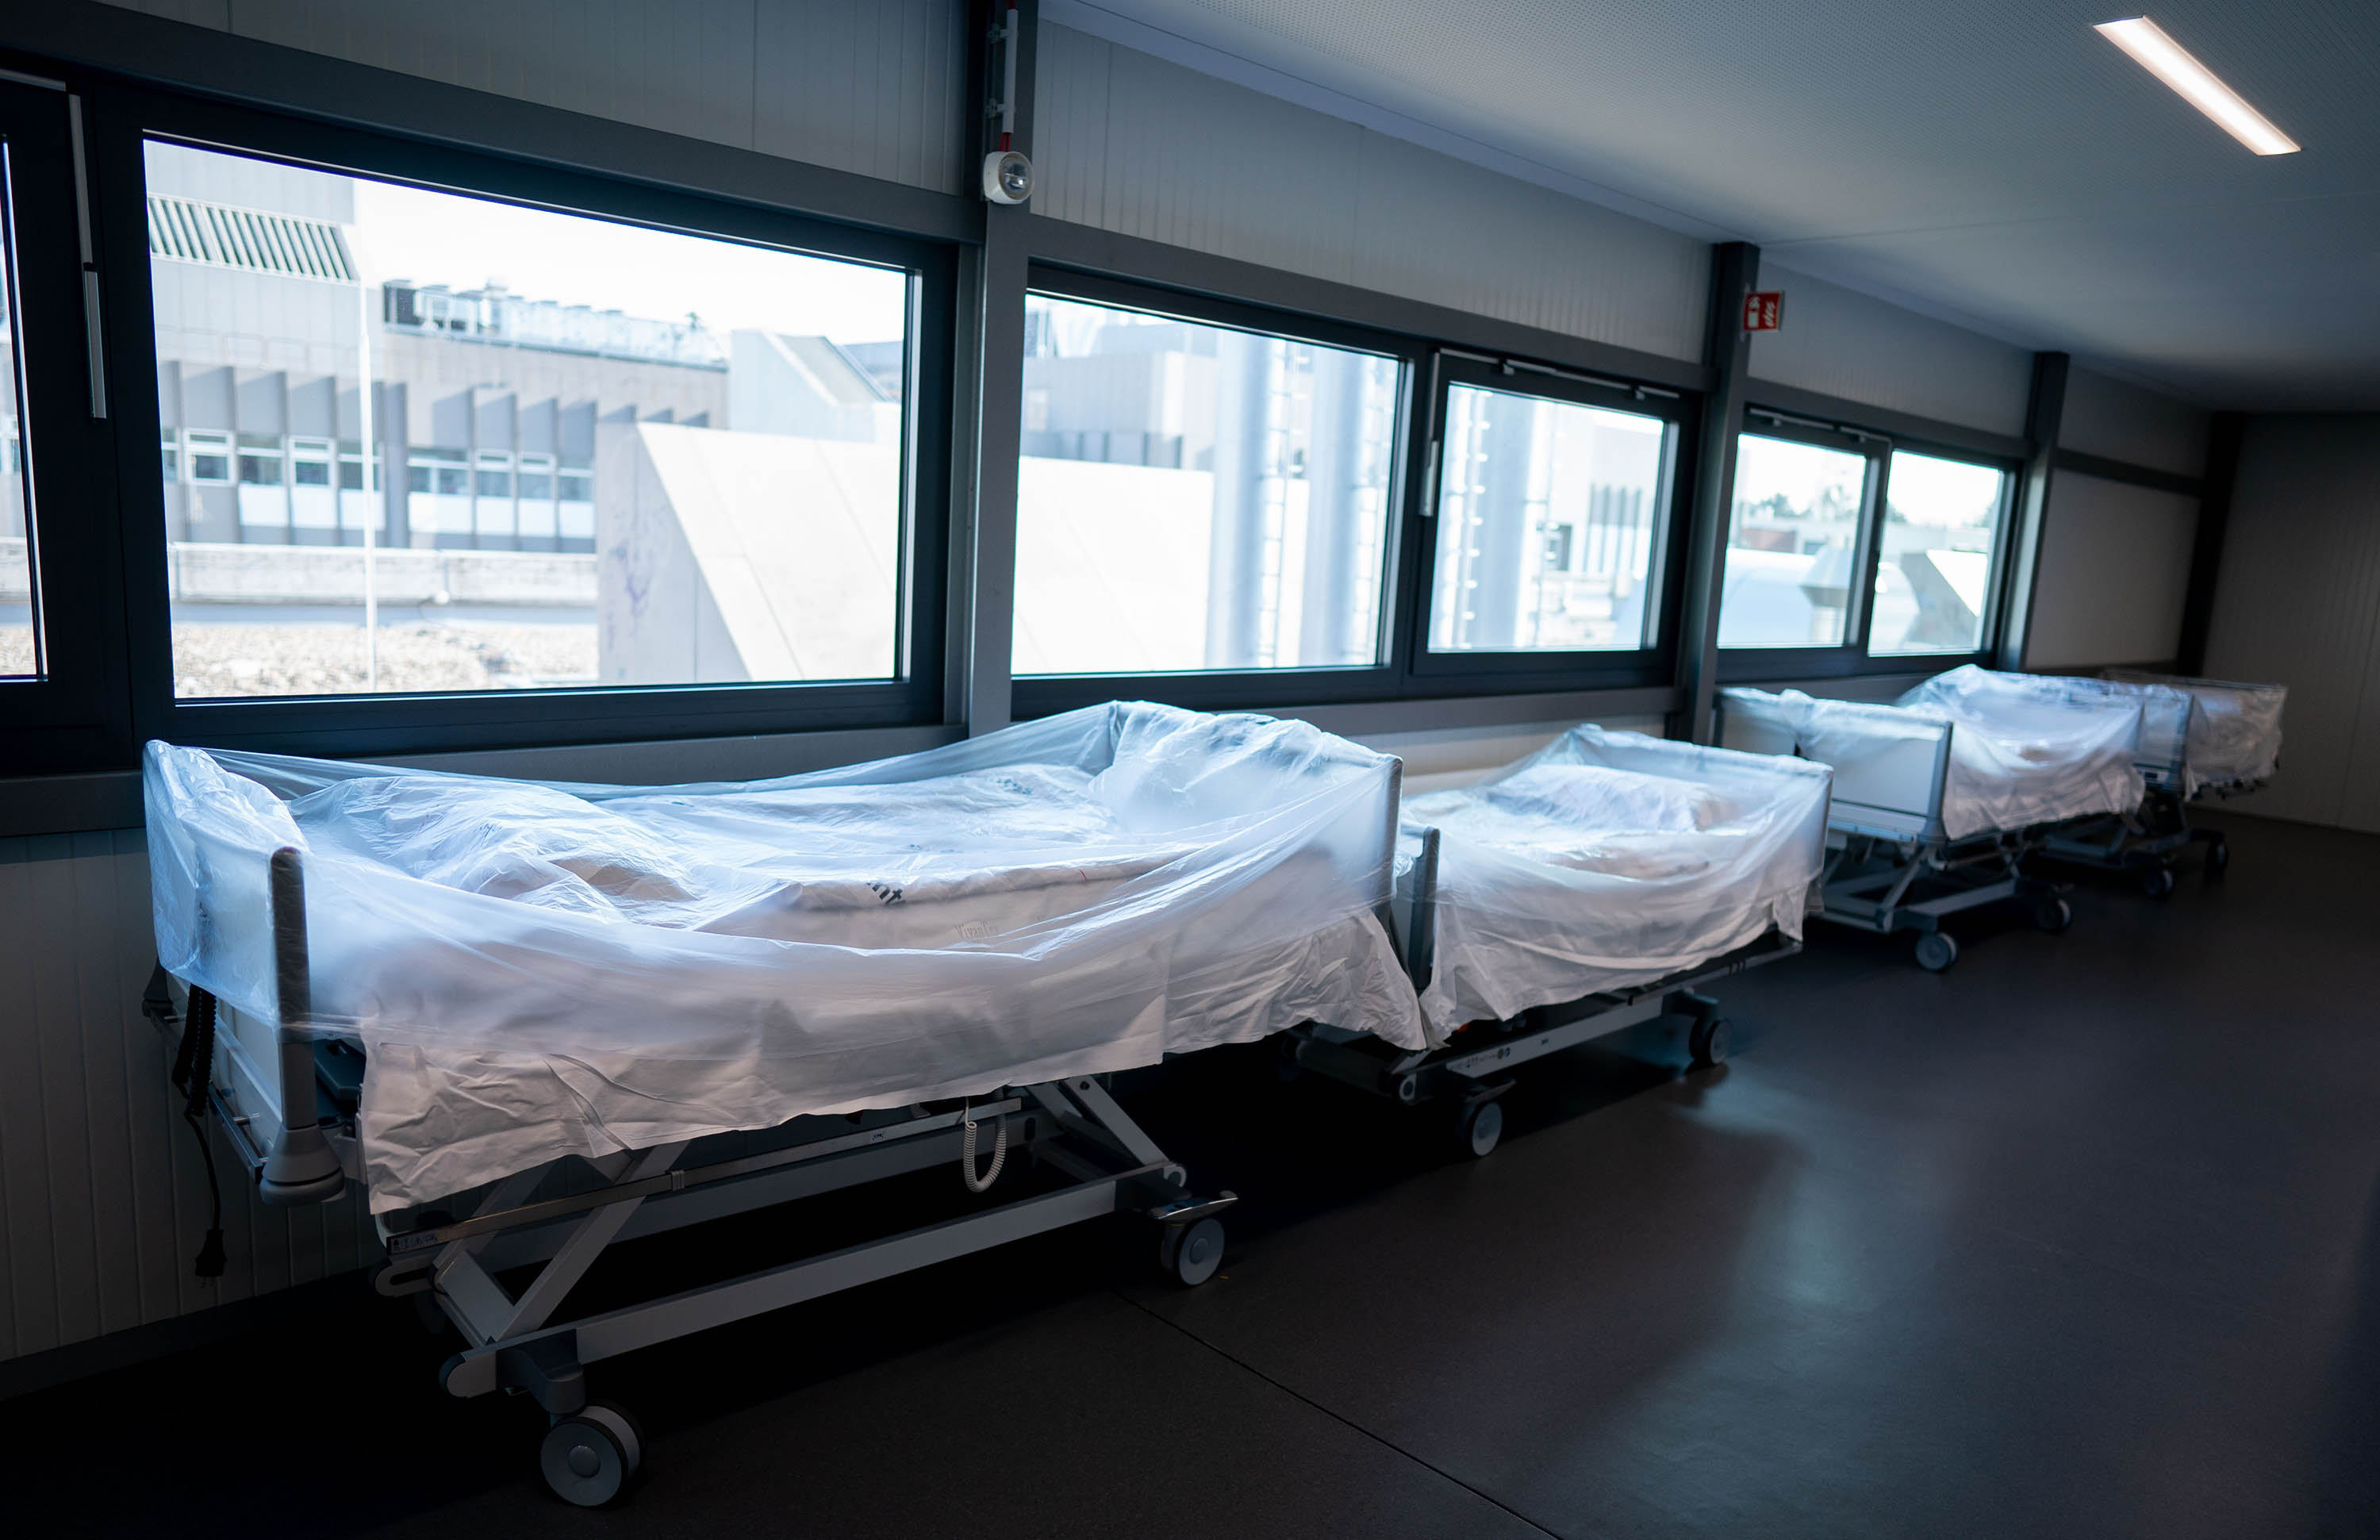 Hospital beds are pictured in a newly opened intensive care unit at the Vivantes Humboldt Clinic in Berlin, Germany, on March 26.